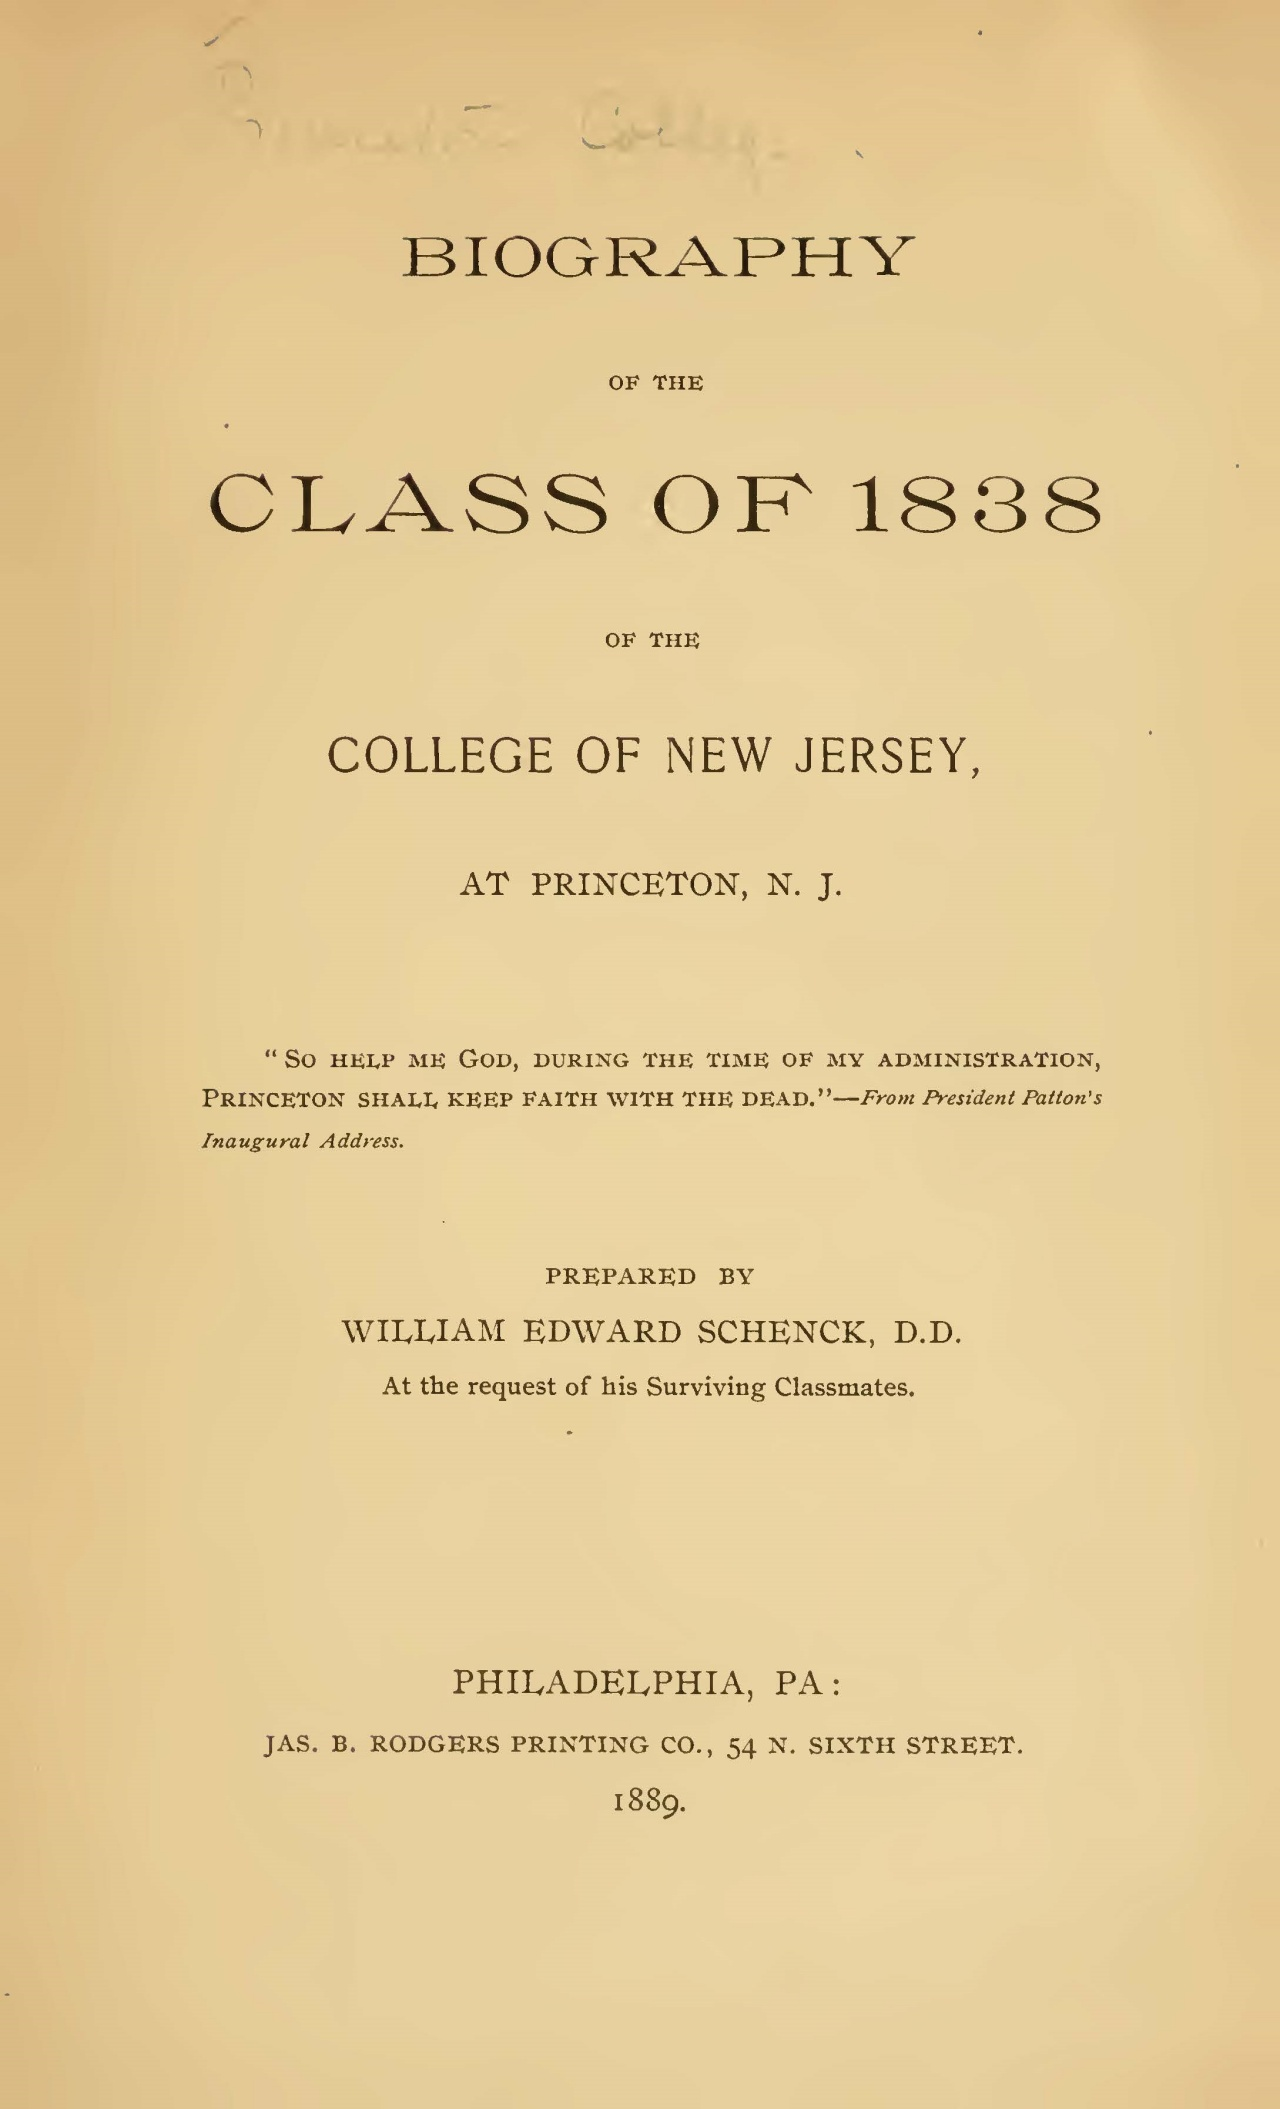 Schenck, William Edward, Biography of the Class of 1838 Title Page.jpg